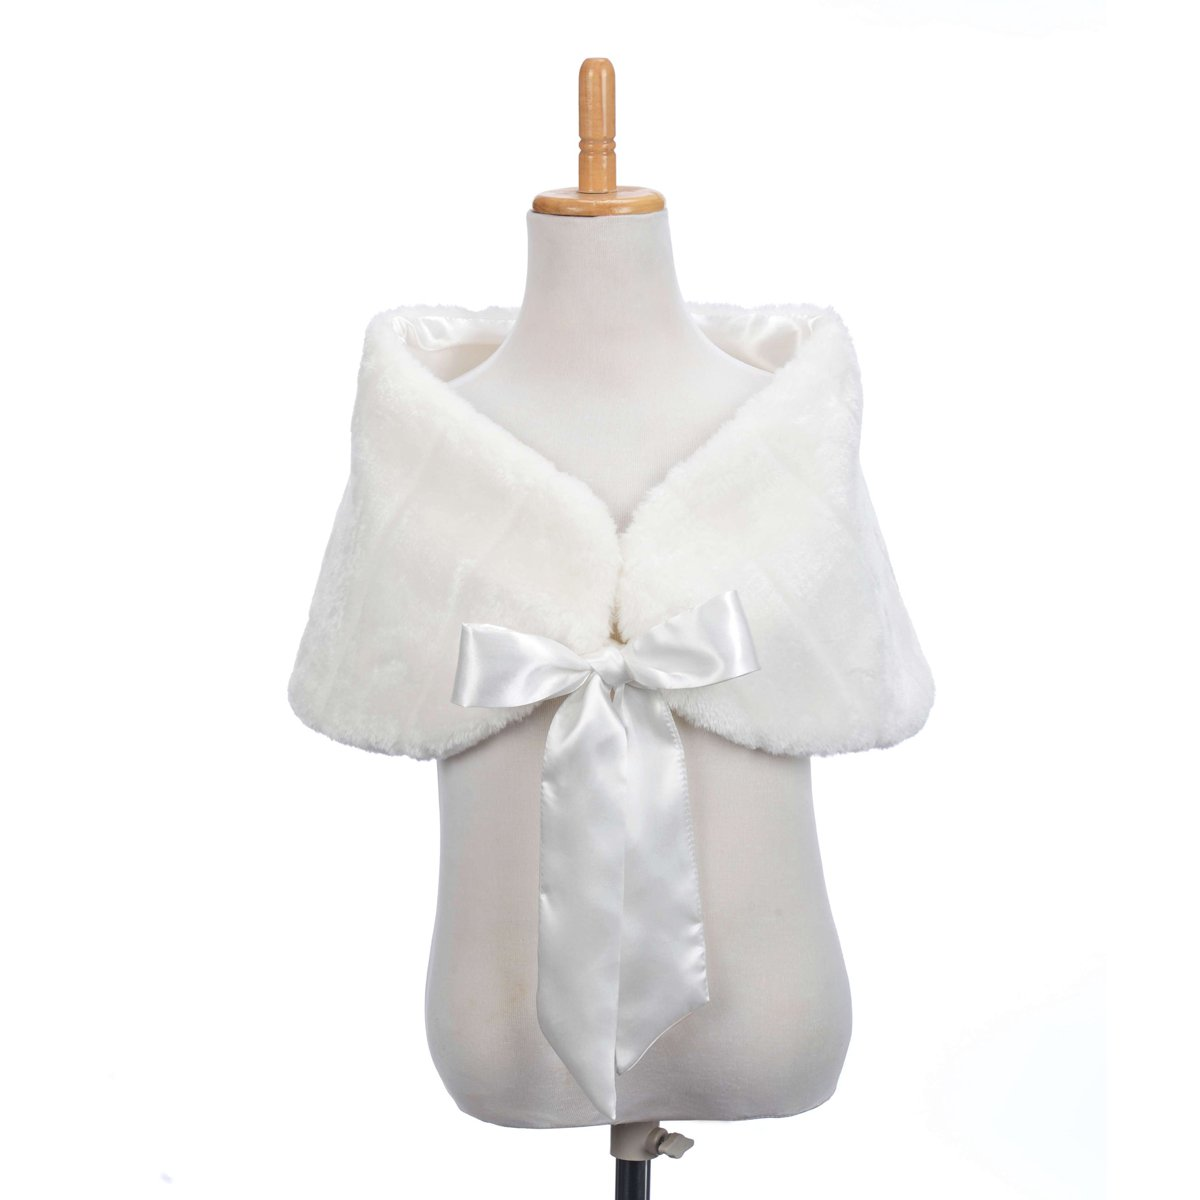 Topwedding Little Girl Faux Fur Shawl Stole Wedding Party Wrap for KID, Ivory, L